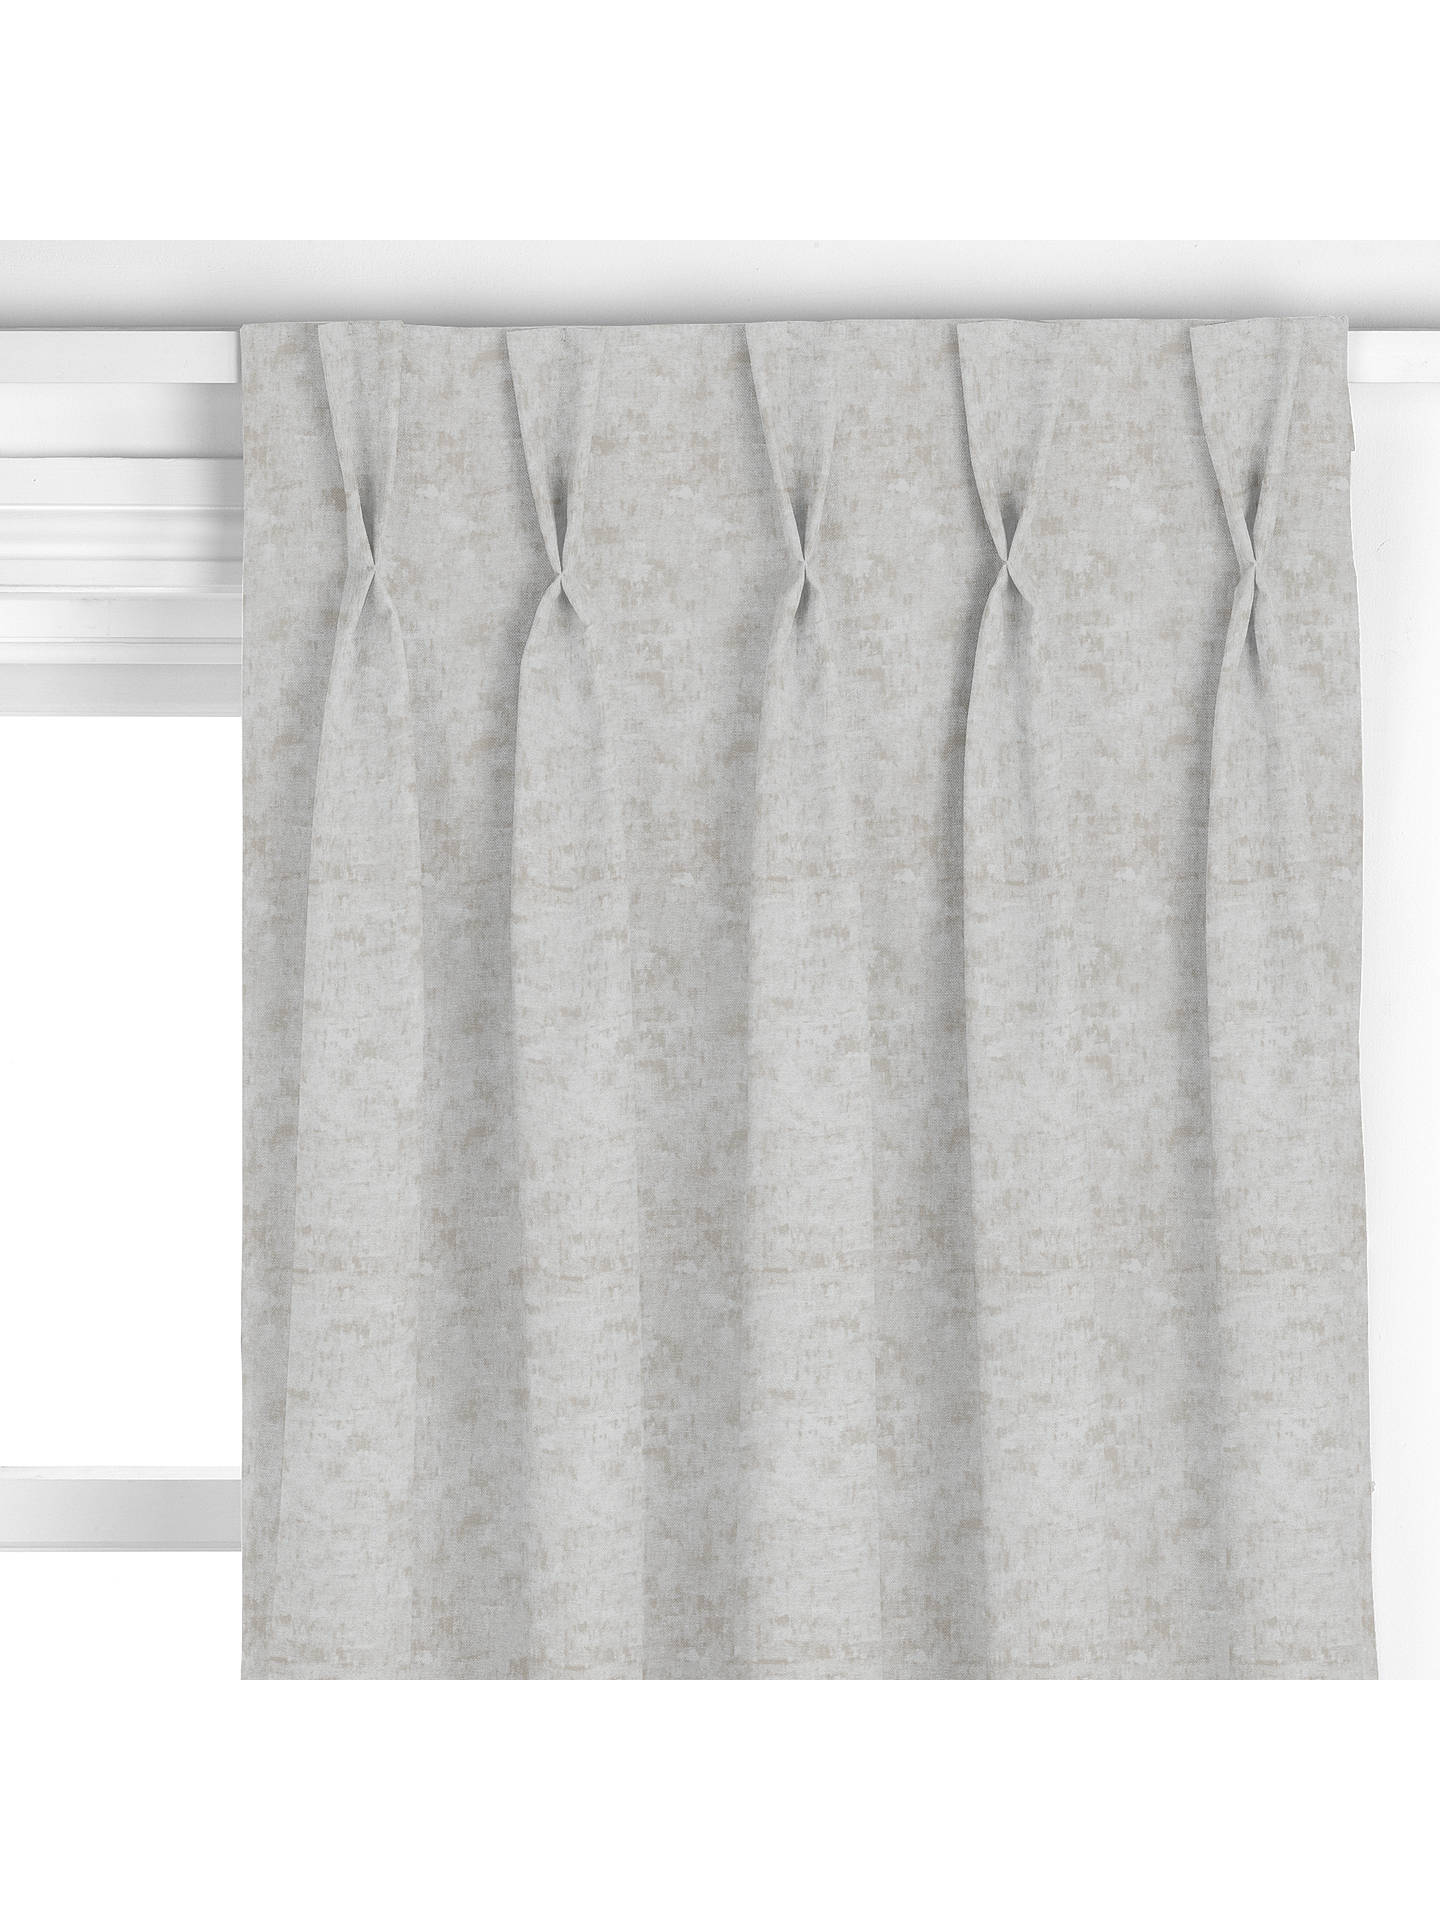 Buy Design Project by John Lewis No.044 Made to Measure Curtains, Textured Chenille Blue Grey Online at johnlewis.com